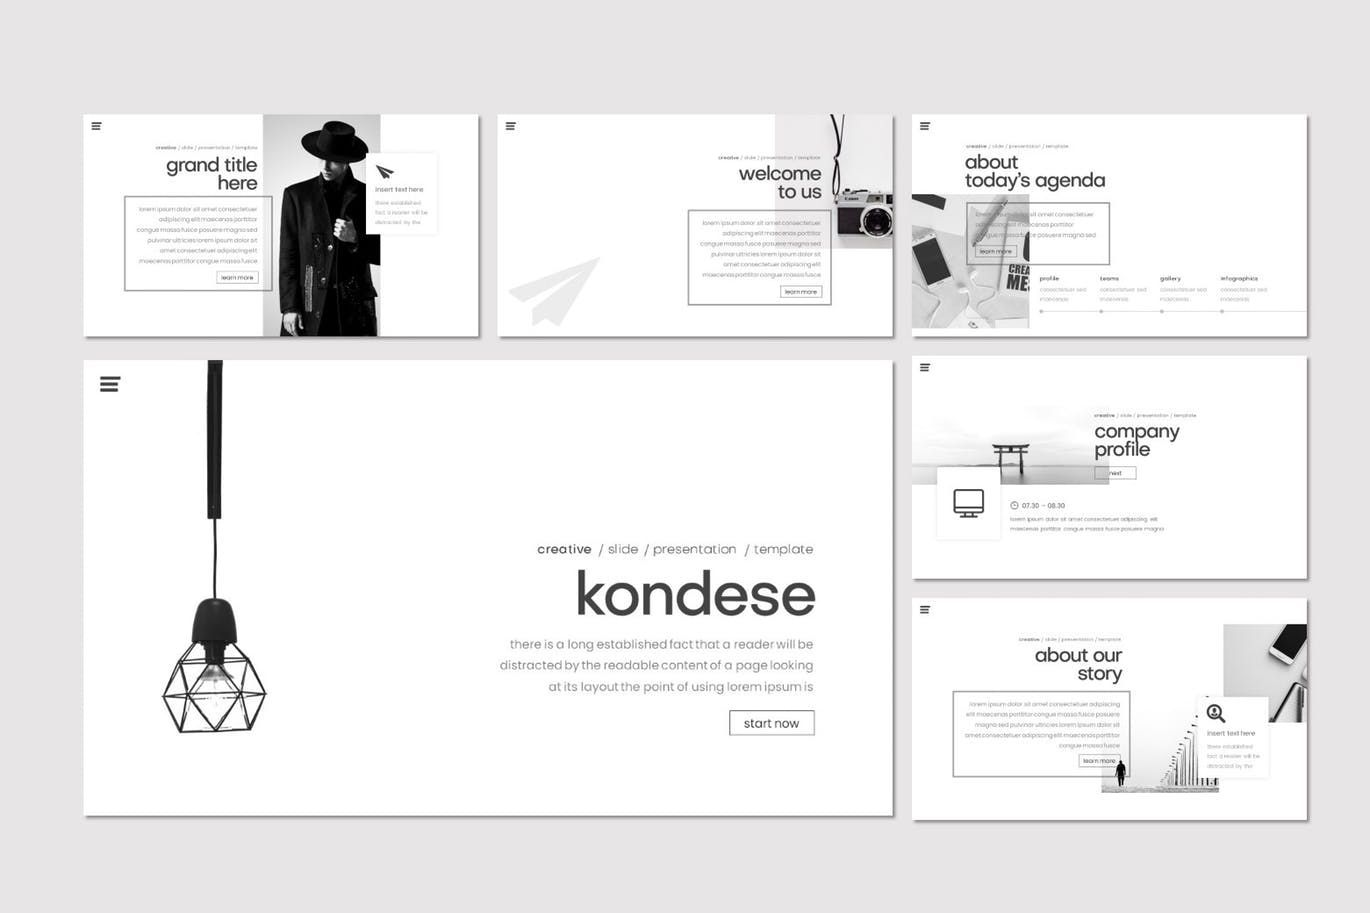 Kondese - PowerPoint Template, Slide 2, 07878, Presentation Templates — PoweredTemplate.com